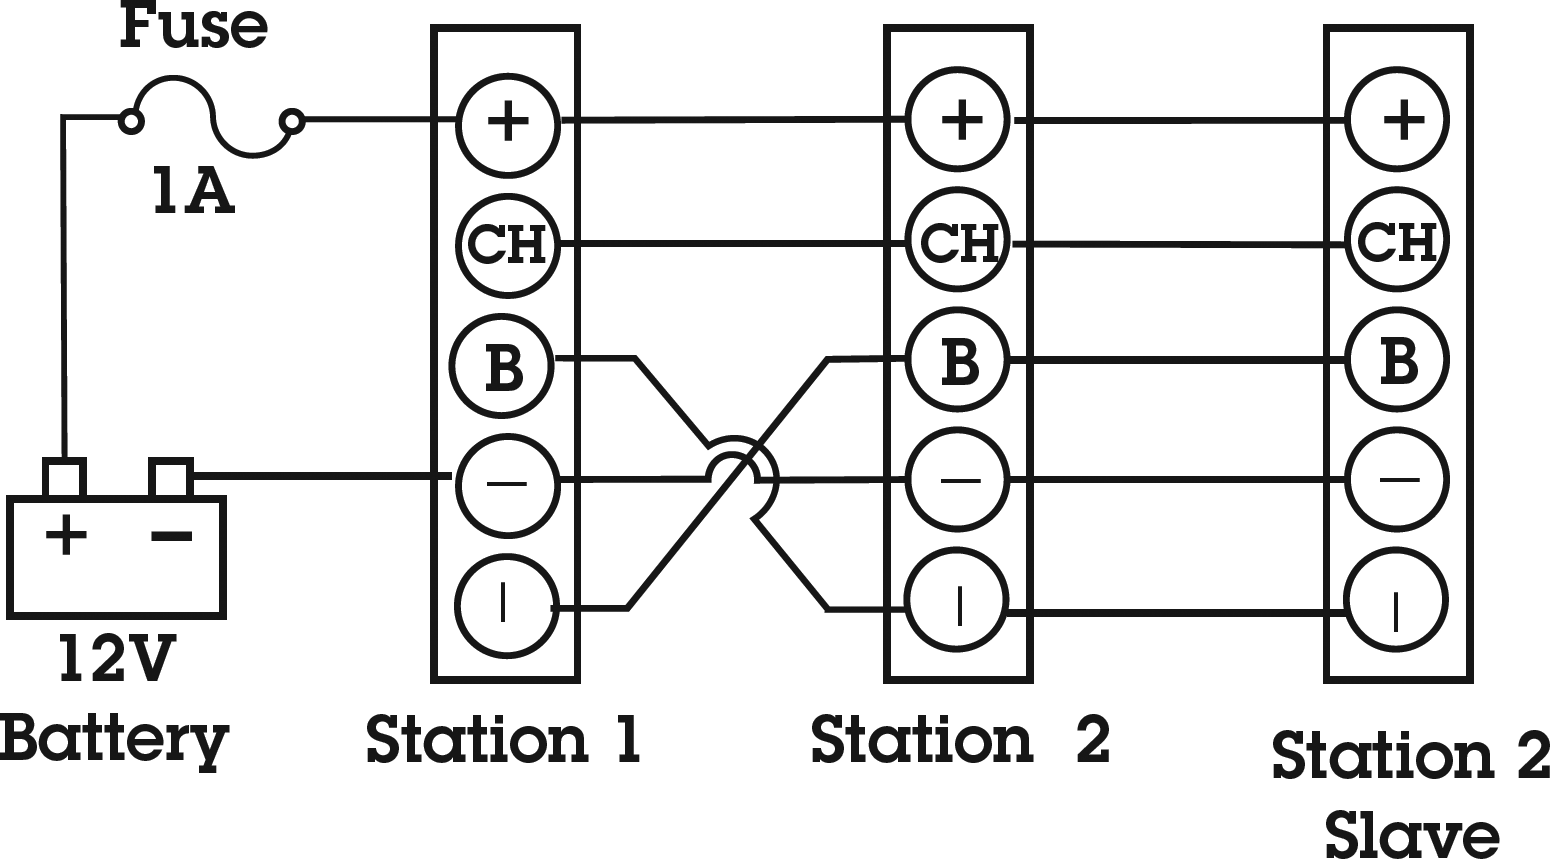 Phone Com Systems Newmar Powering The Network Schematic Wiring Diagram 2 Station